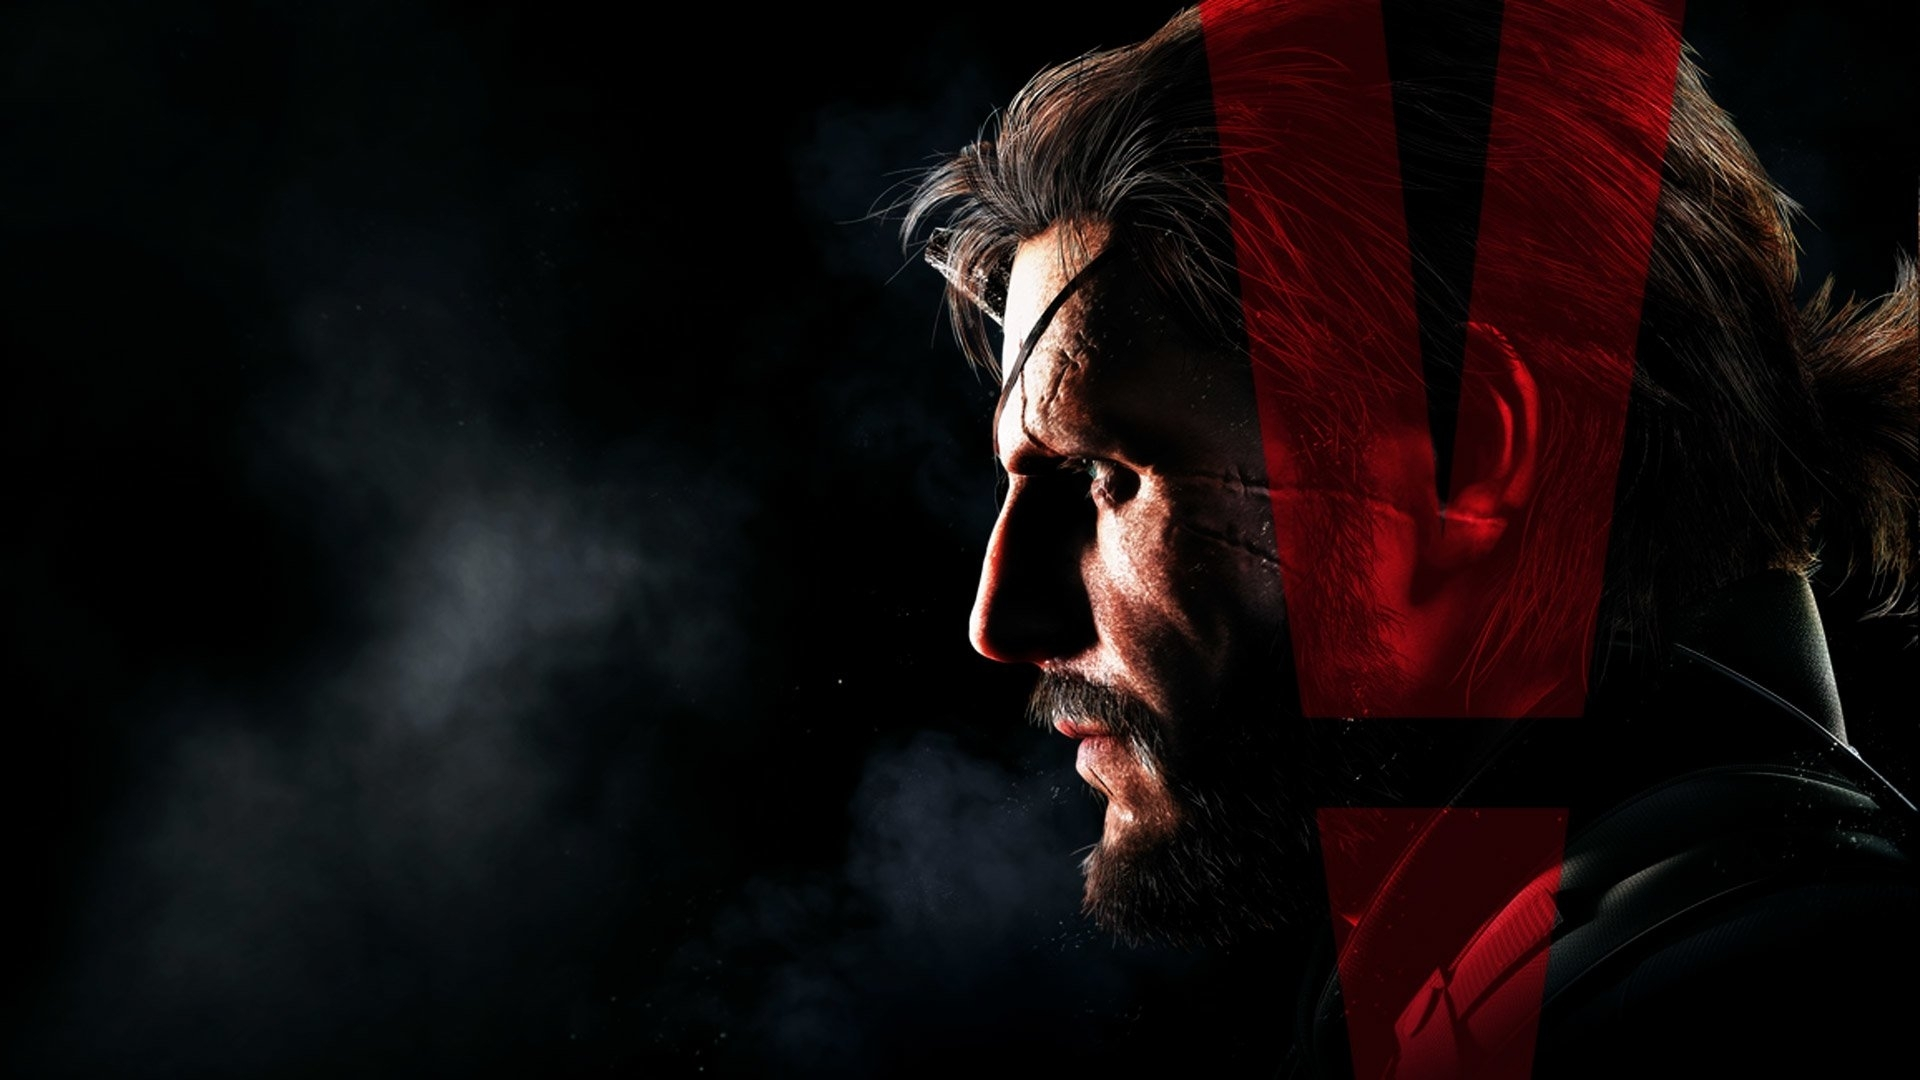 metal gear solid v: the phantom pain full hd fond d'écran and